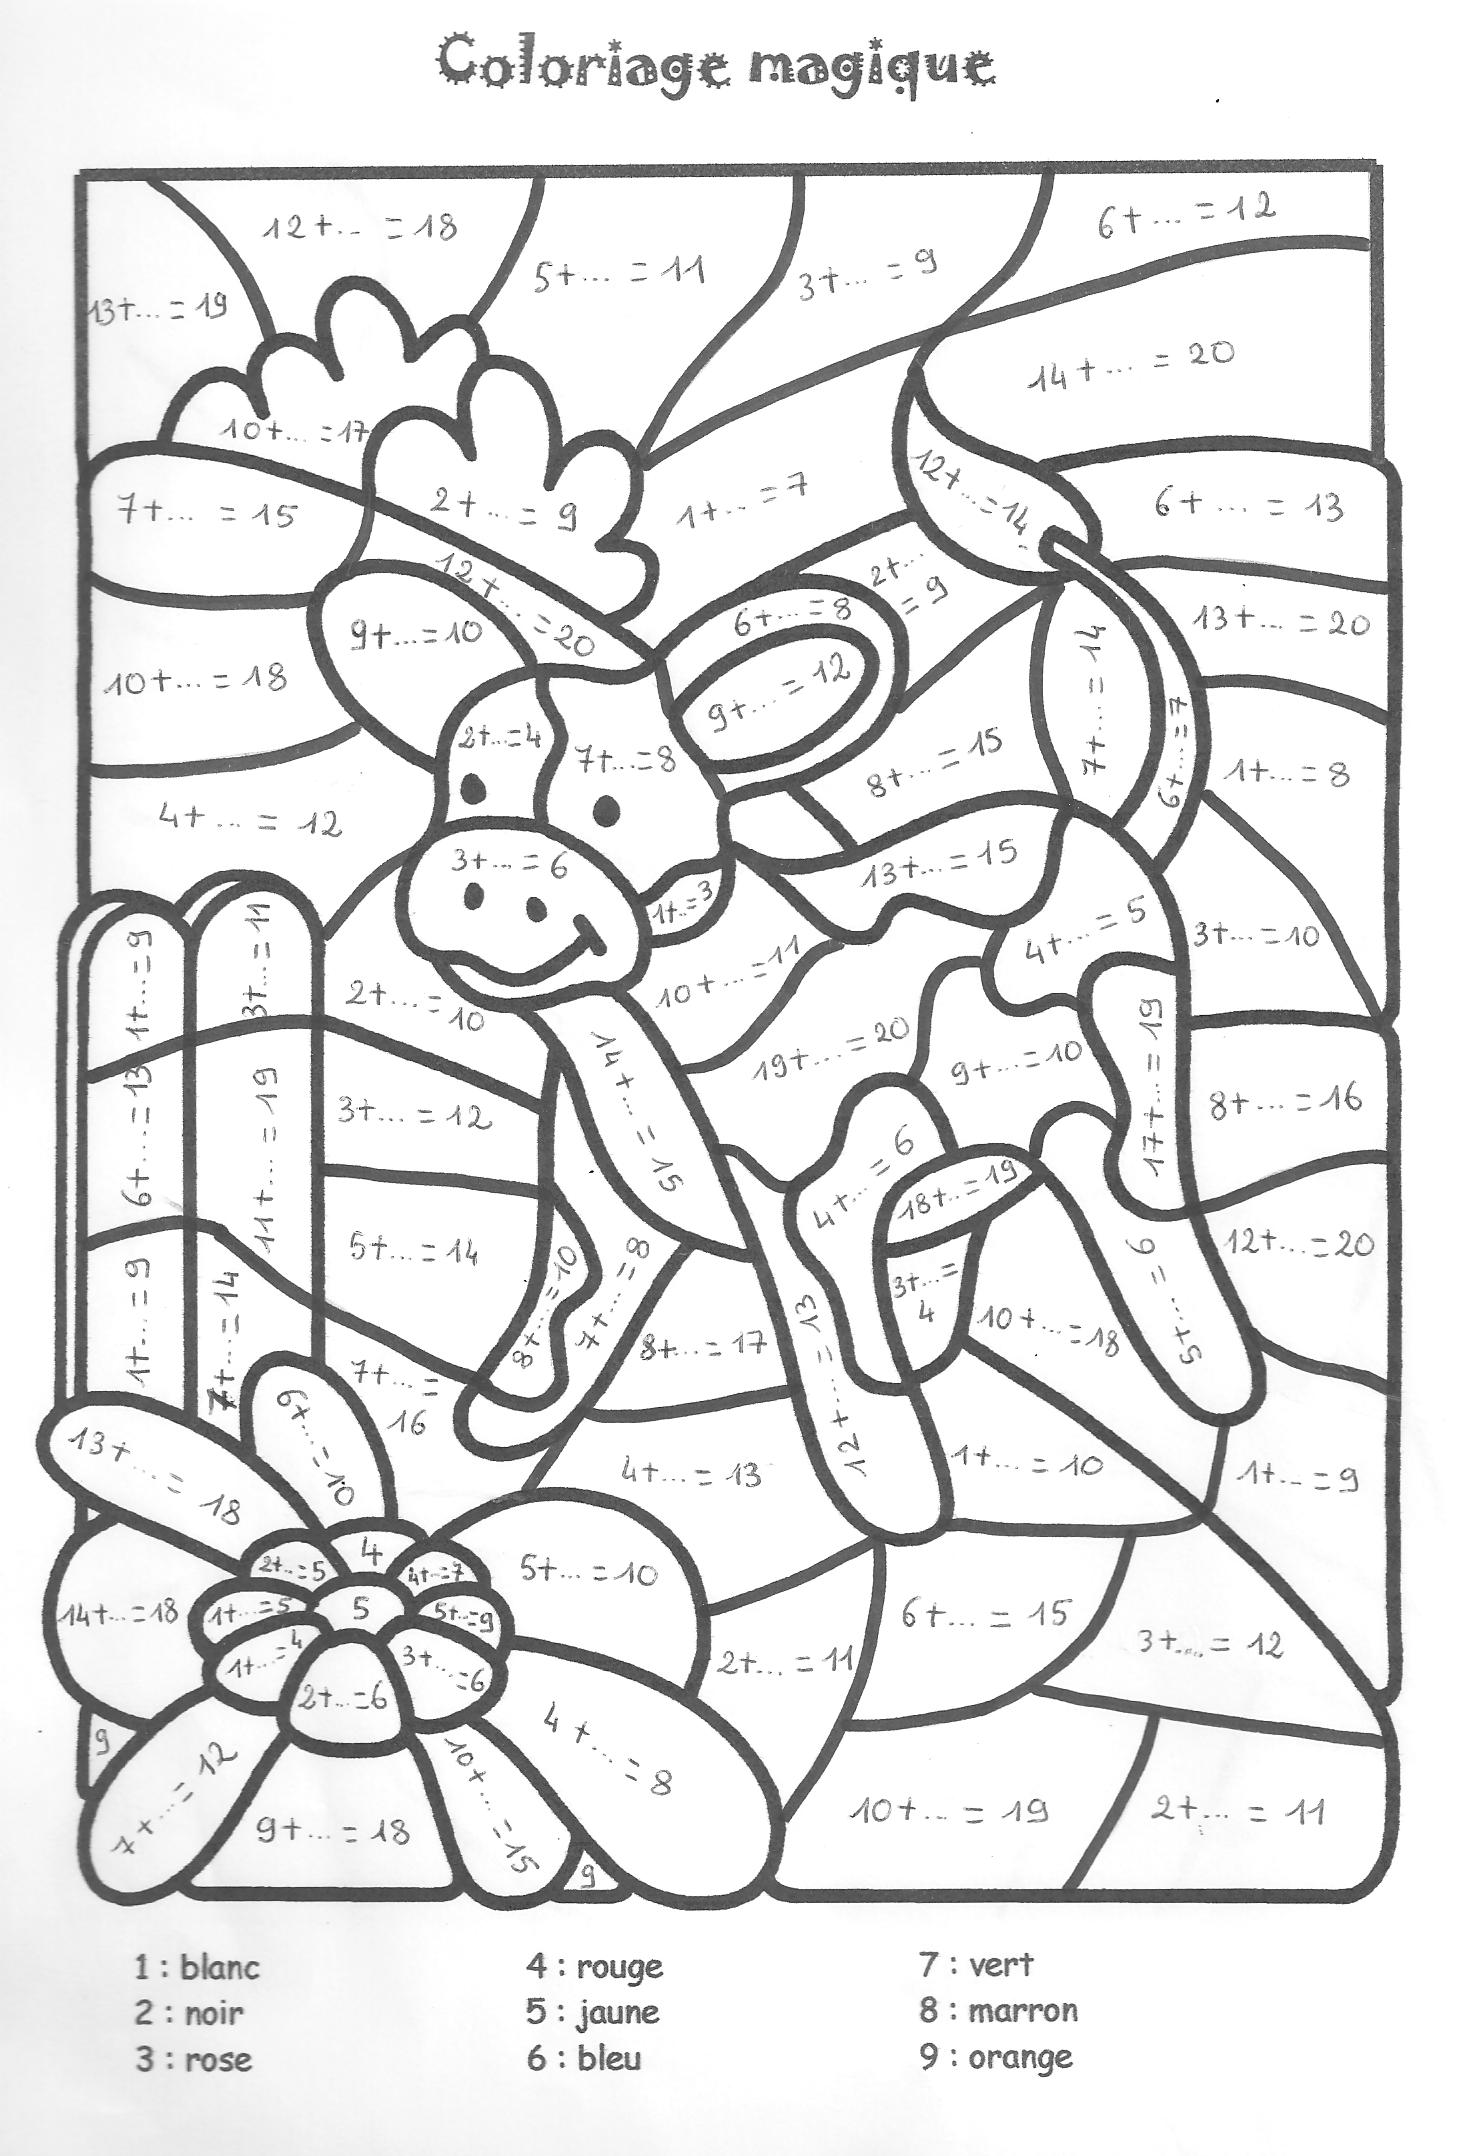 Cool Coloriage Magique Alphabet Gs 53 Dans Coloriage Pages with Coloriage Magique Alphabet Gs